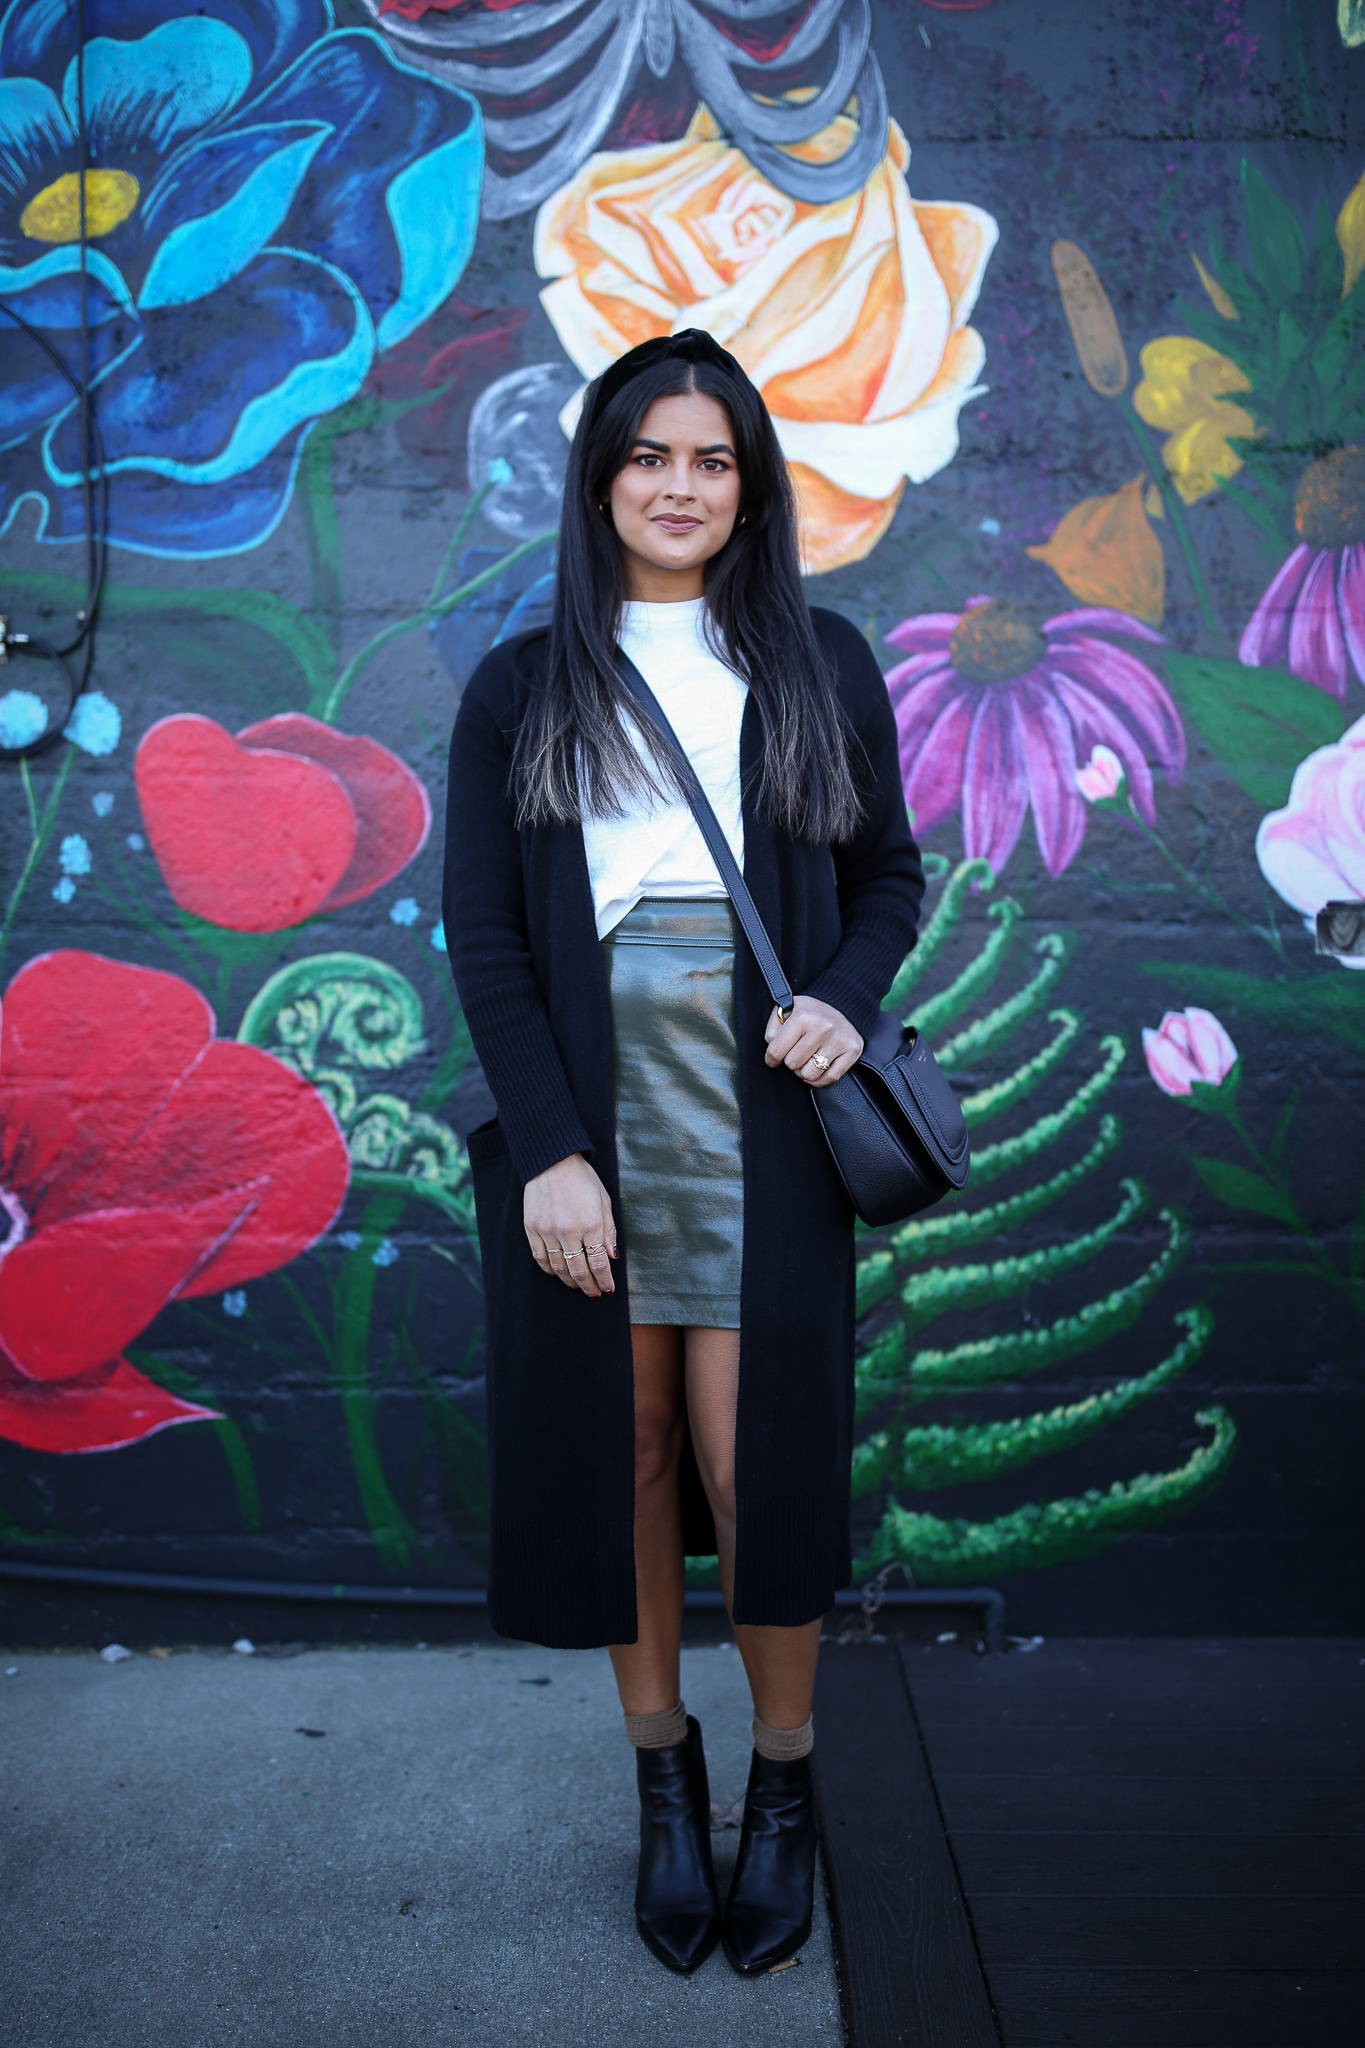 Priya the Blog, Nashville fashion blog, Nashville fashion blogger, Nashville style blog, Nashville style blogger, Nordstrom Sale, black booties, cardigan coat, black cardigan coat, Nordstrom Anniversary Sale, green leather miniskirt, green leather skirt, how to style a green leather miniskirt, Tony Bianco booties, fall fashion, fall style